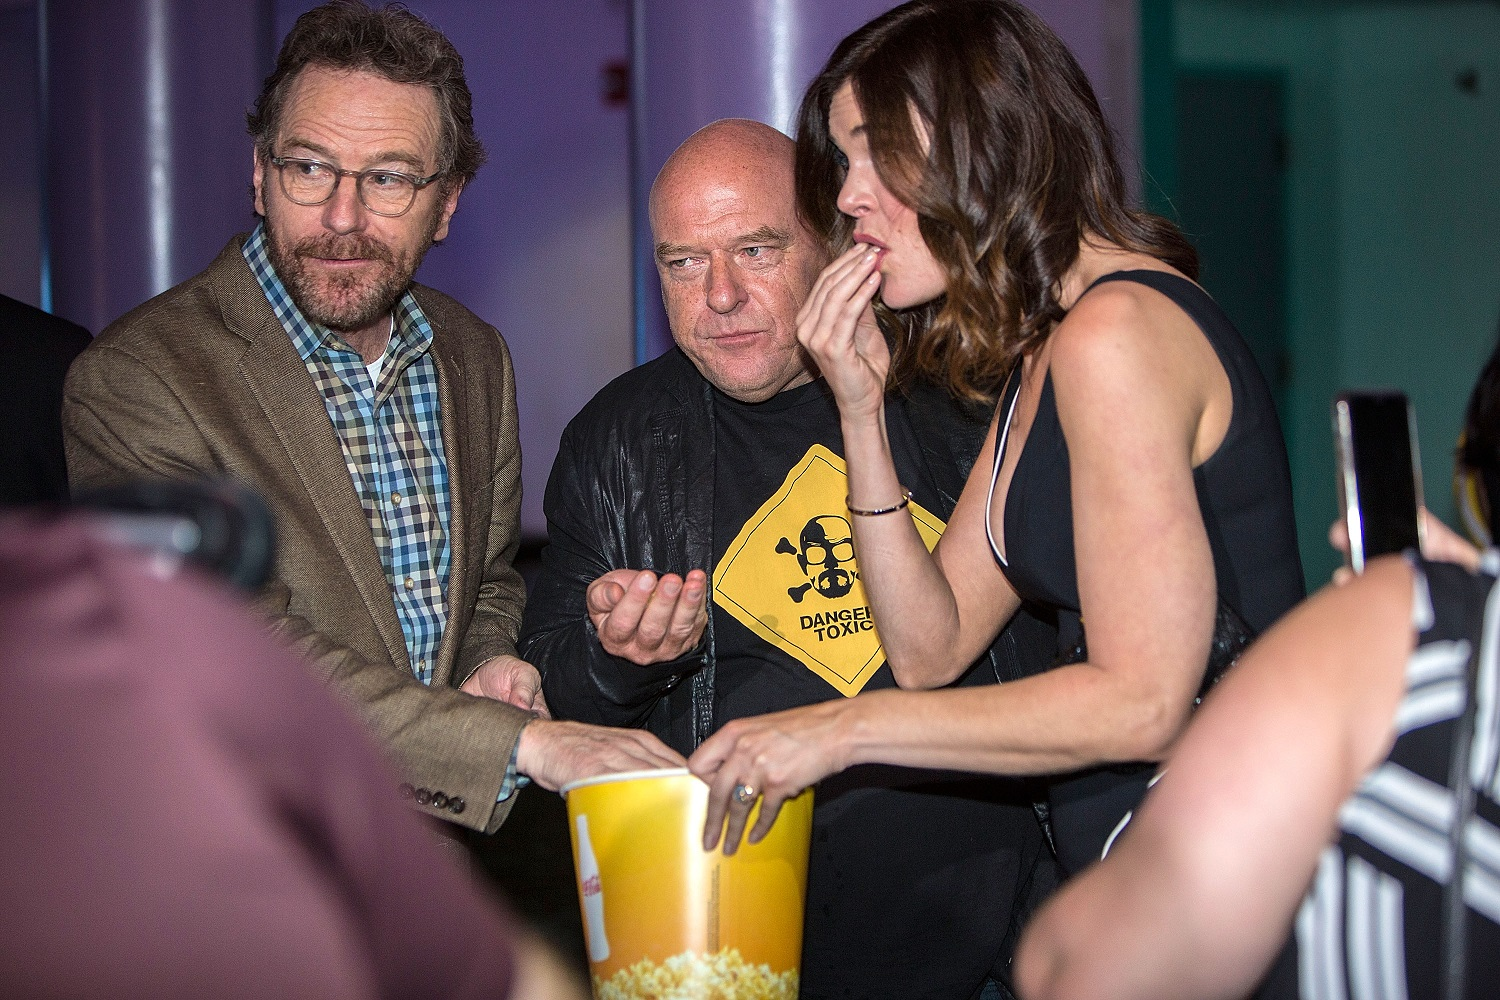 Breaking Bad stars Bryan Cranston, Dean Norris, and Betsy Brandt share a bucket of popcorn